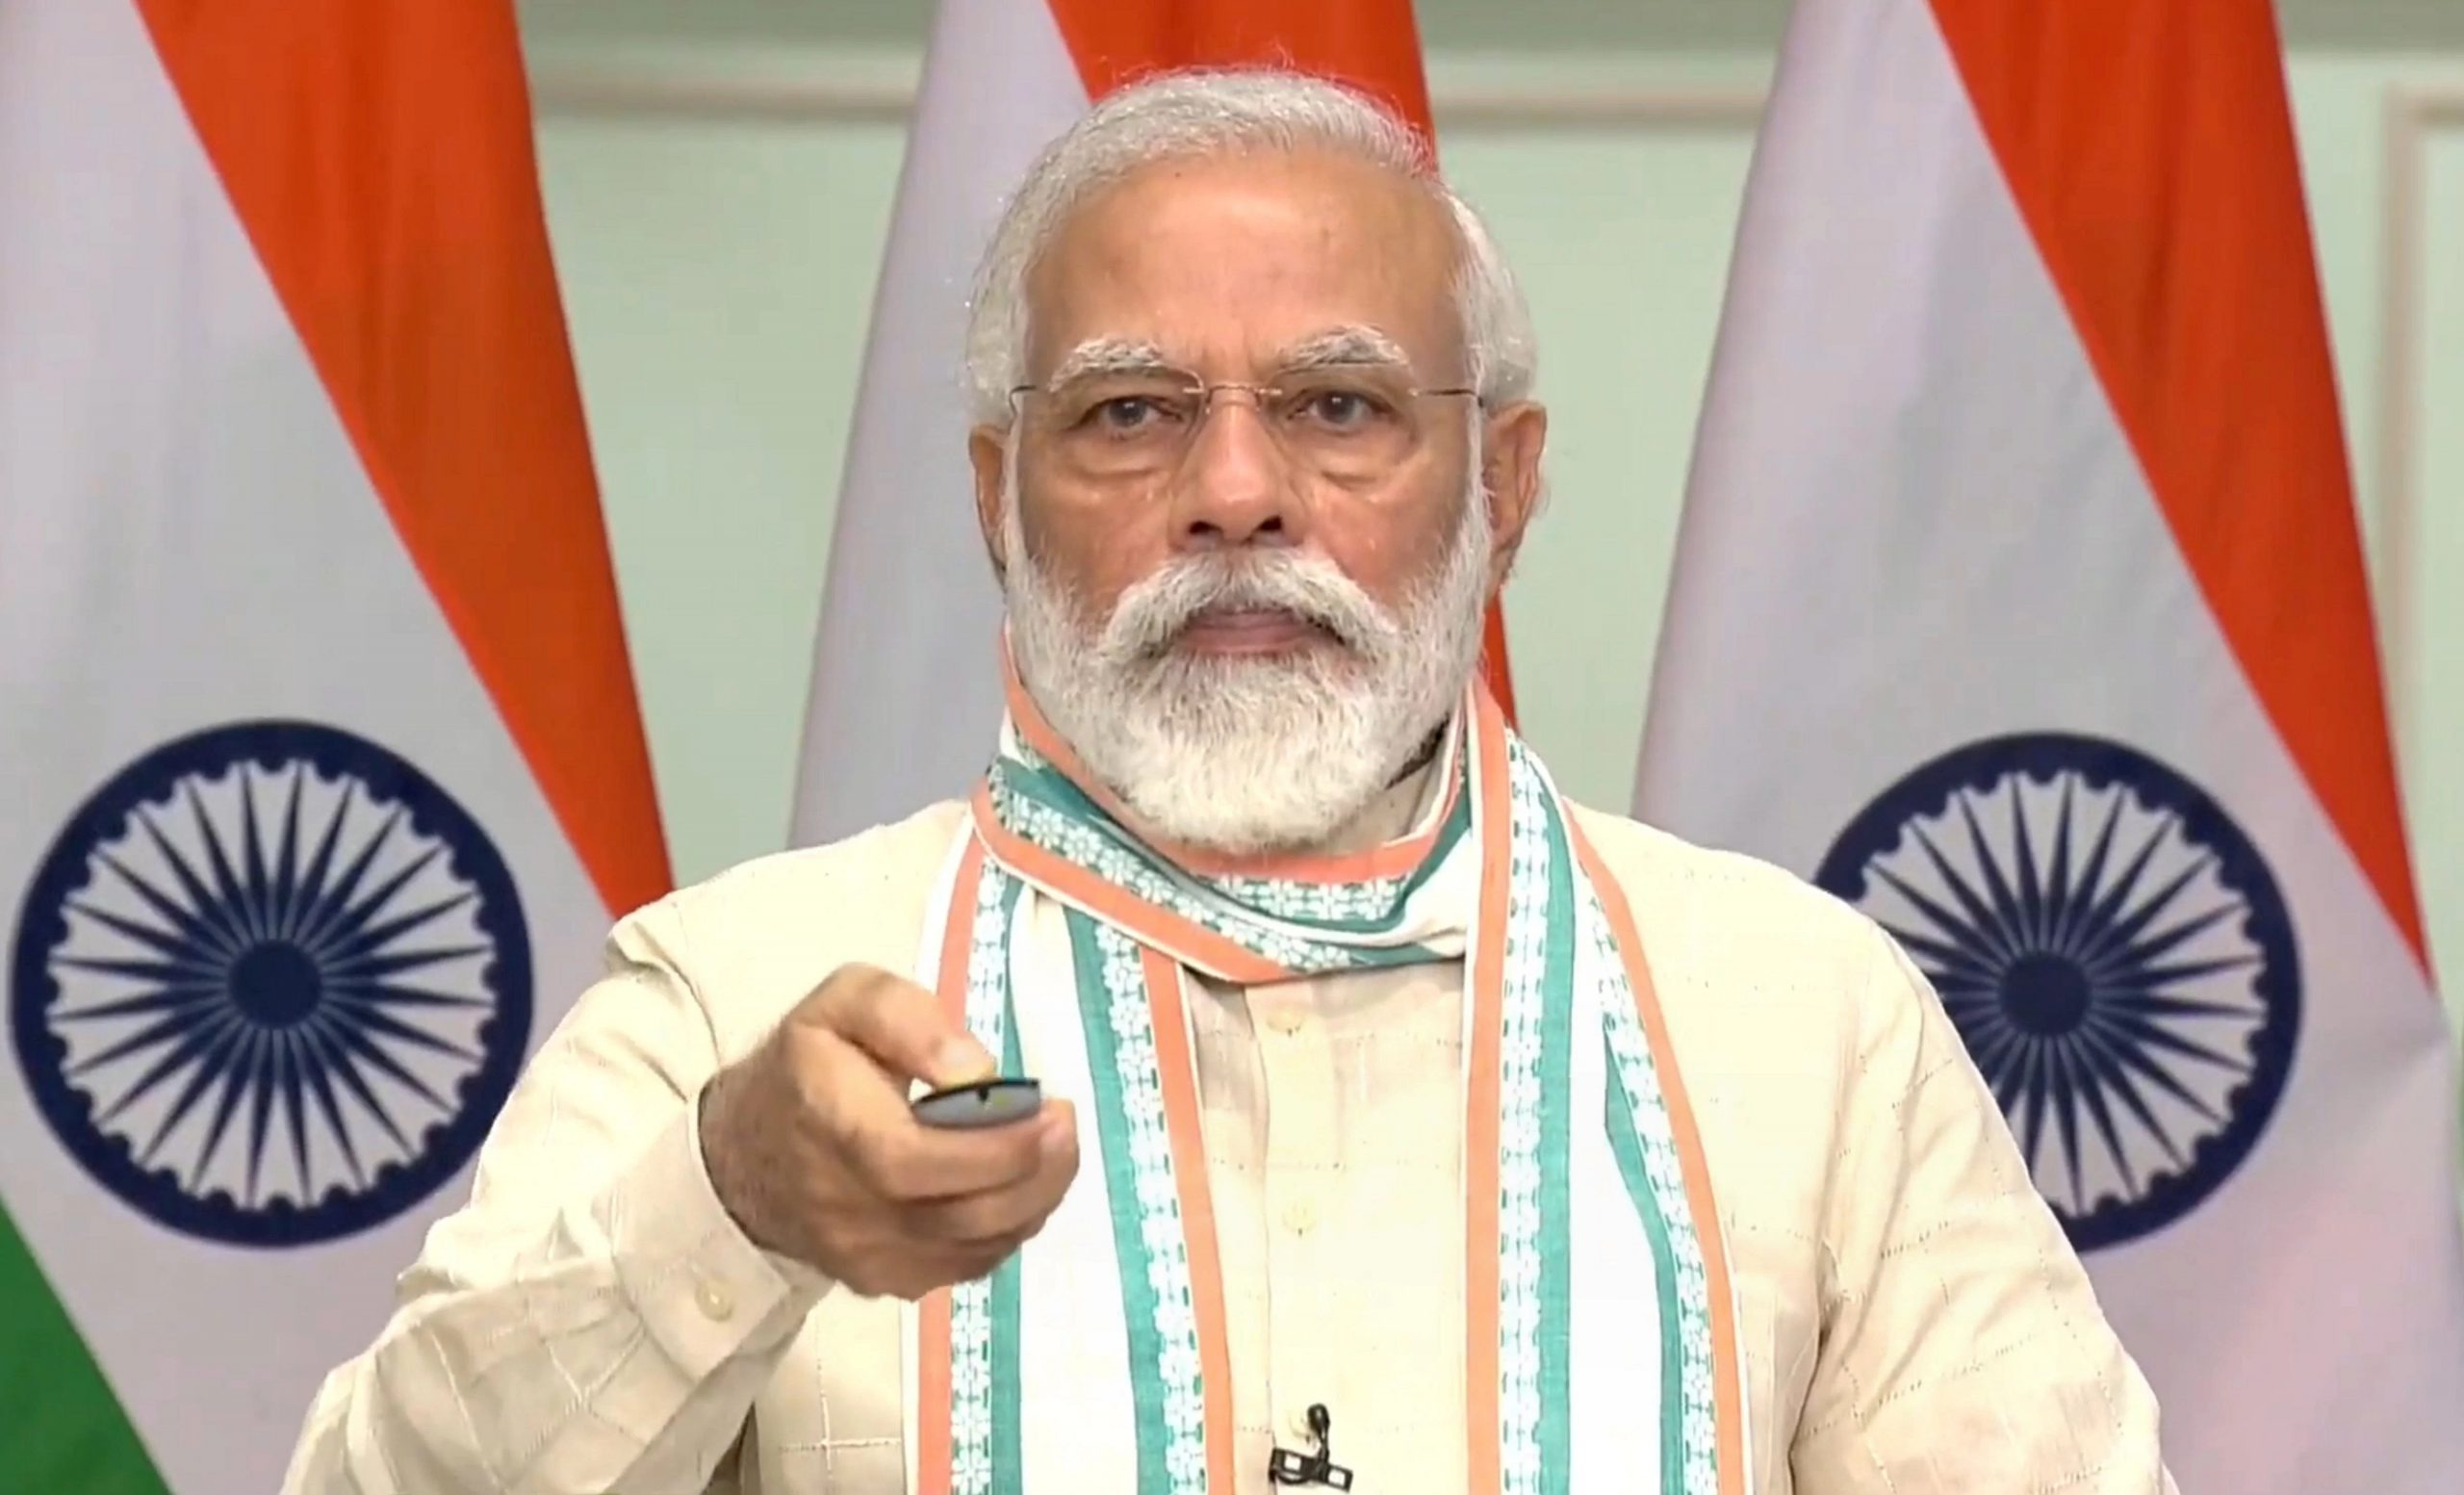 PM Modi to visit Assam, West Bengal, several projects to be launched